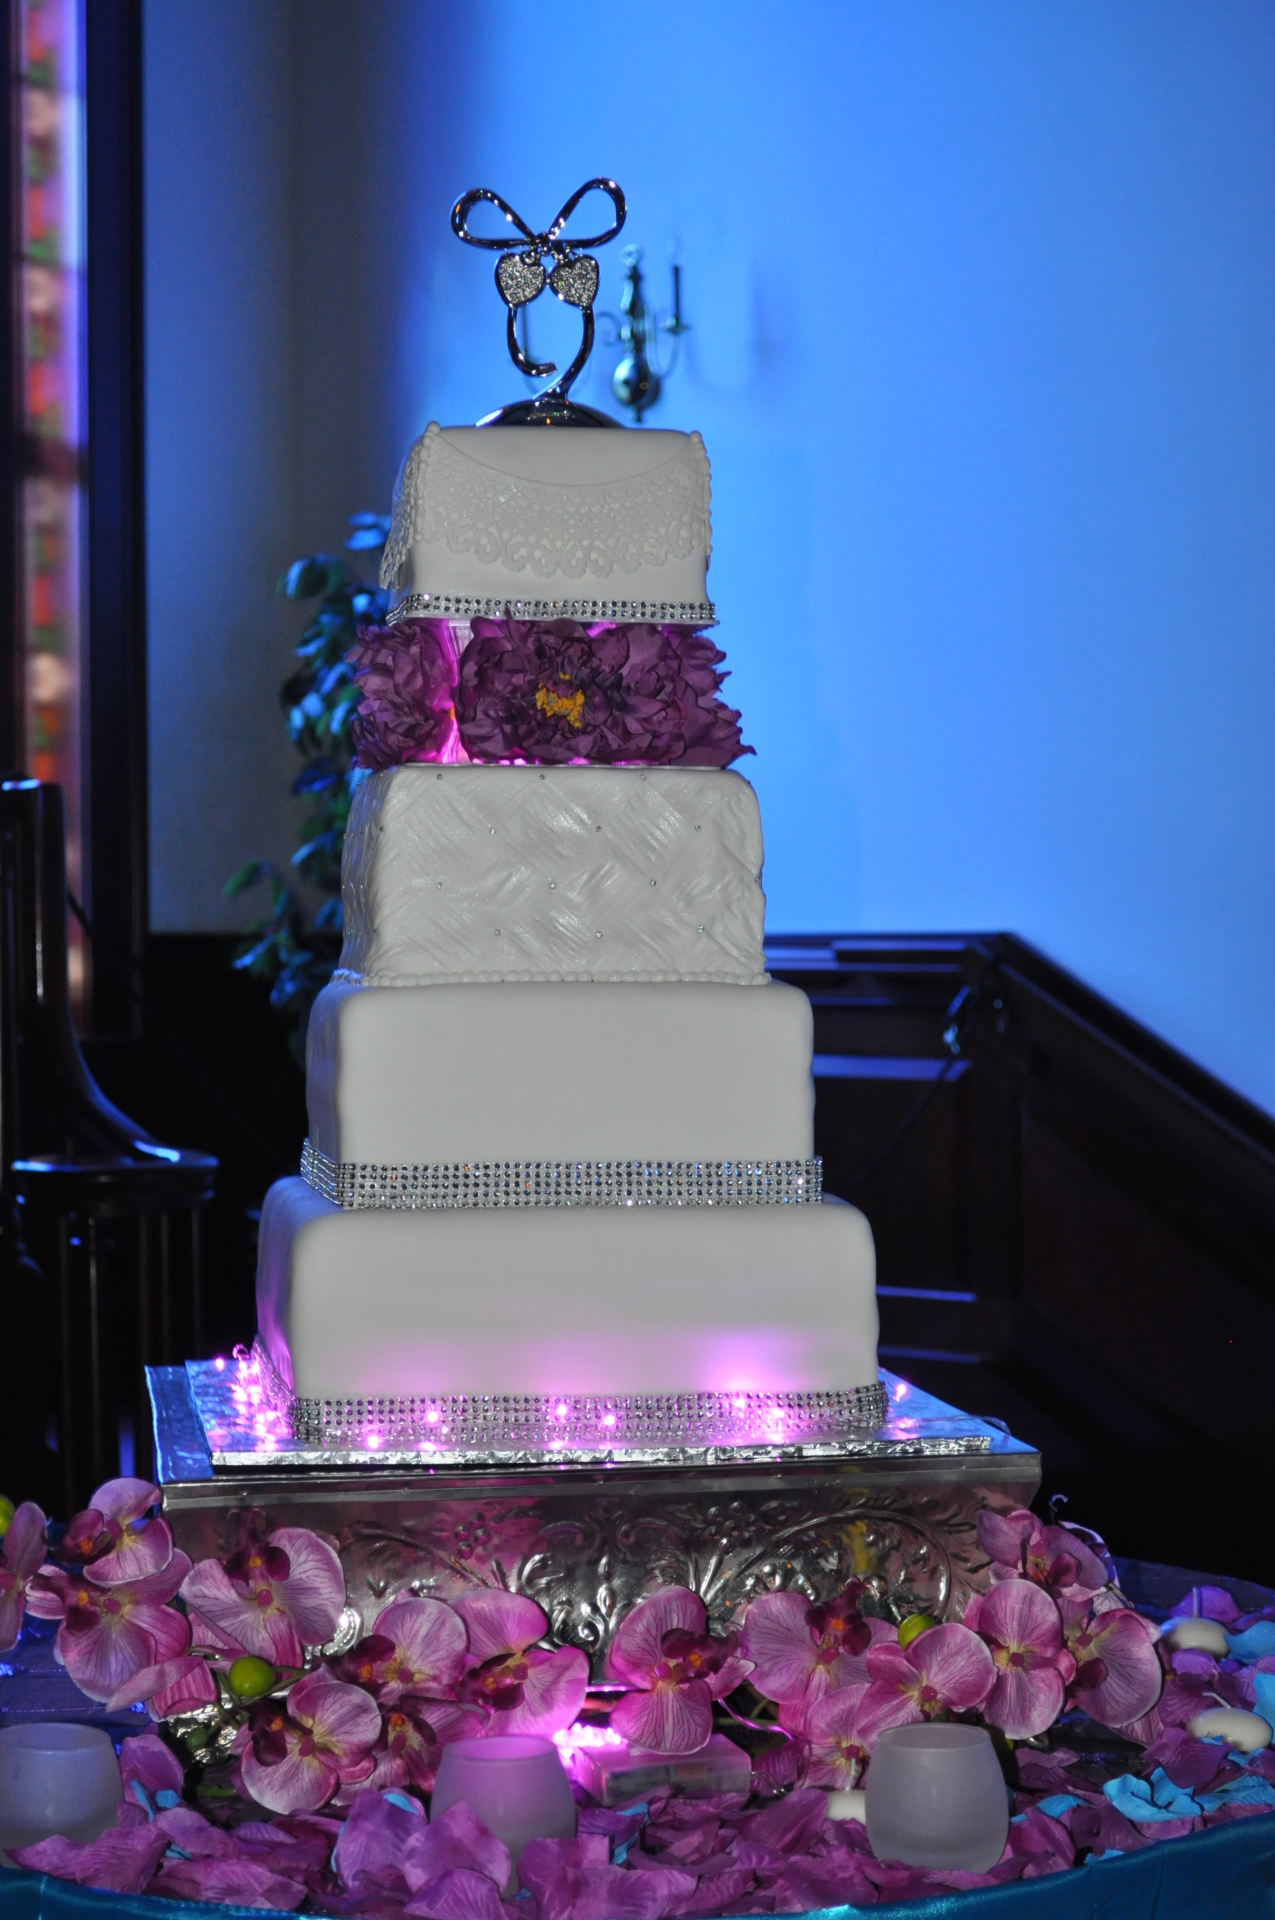 Fondant square tiers with silk flowers